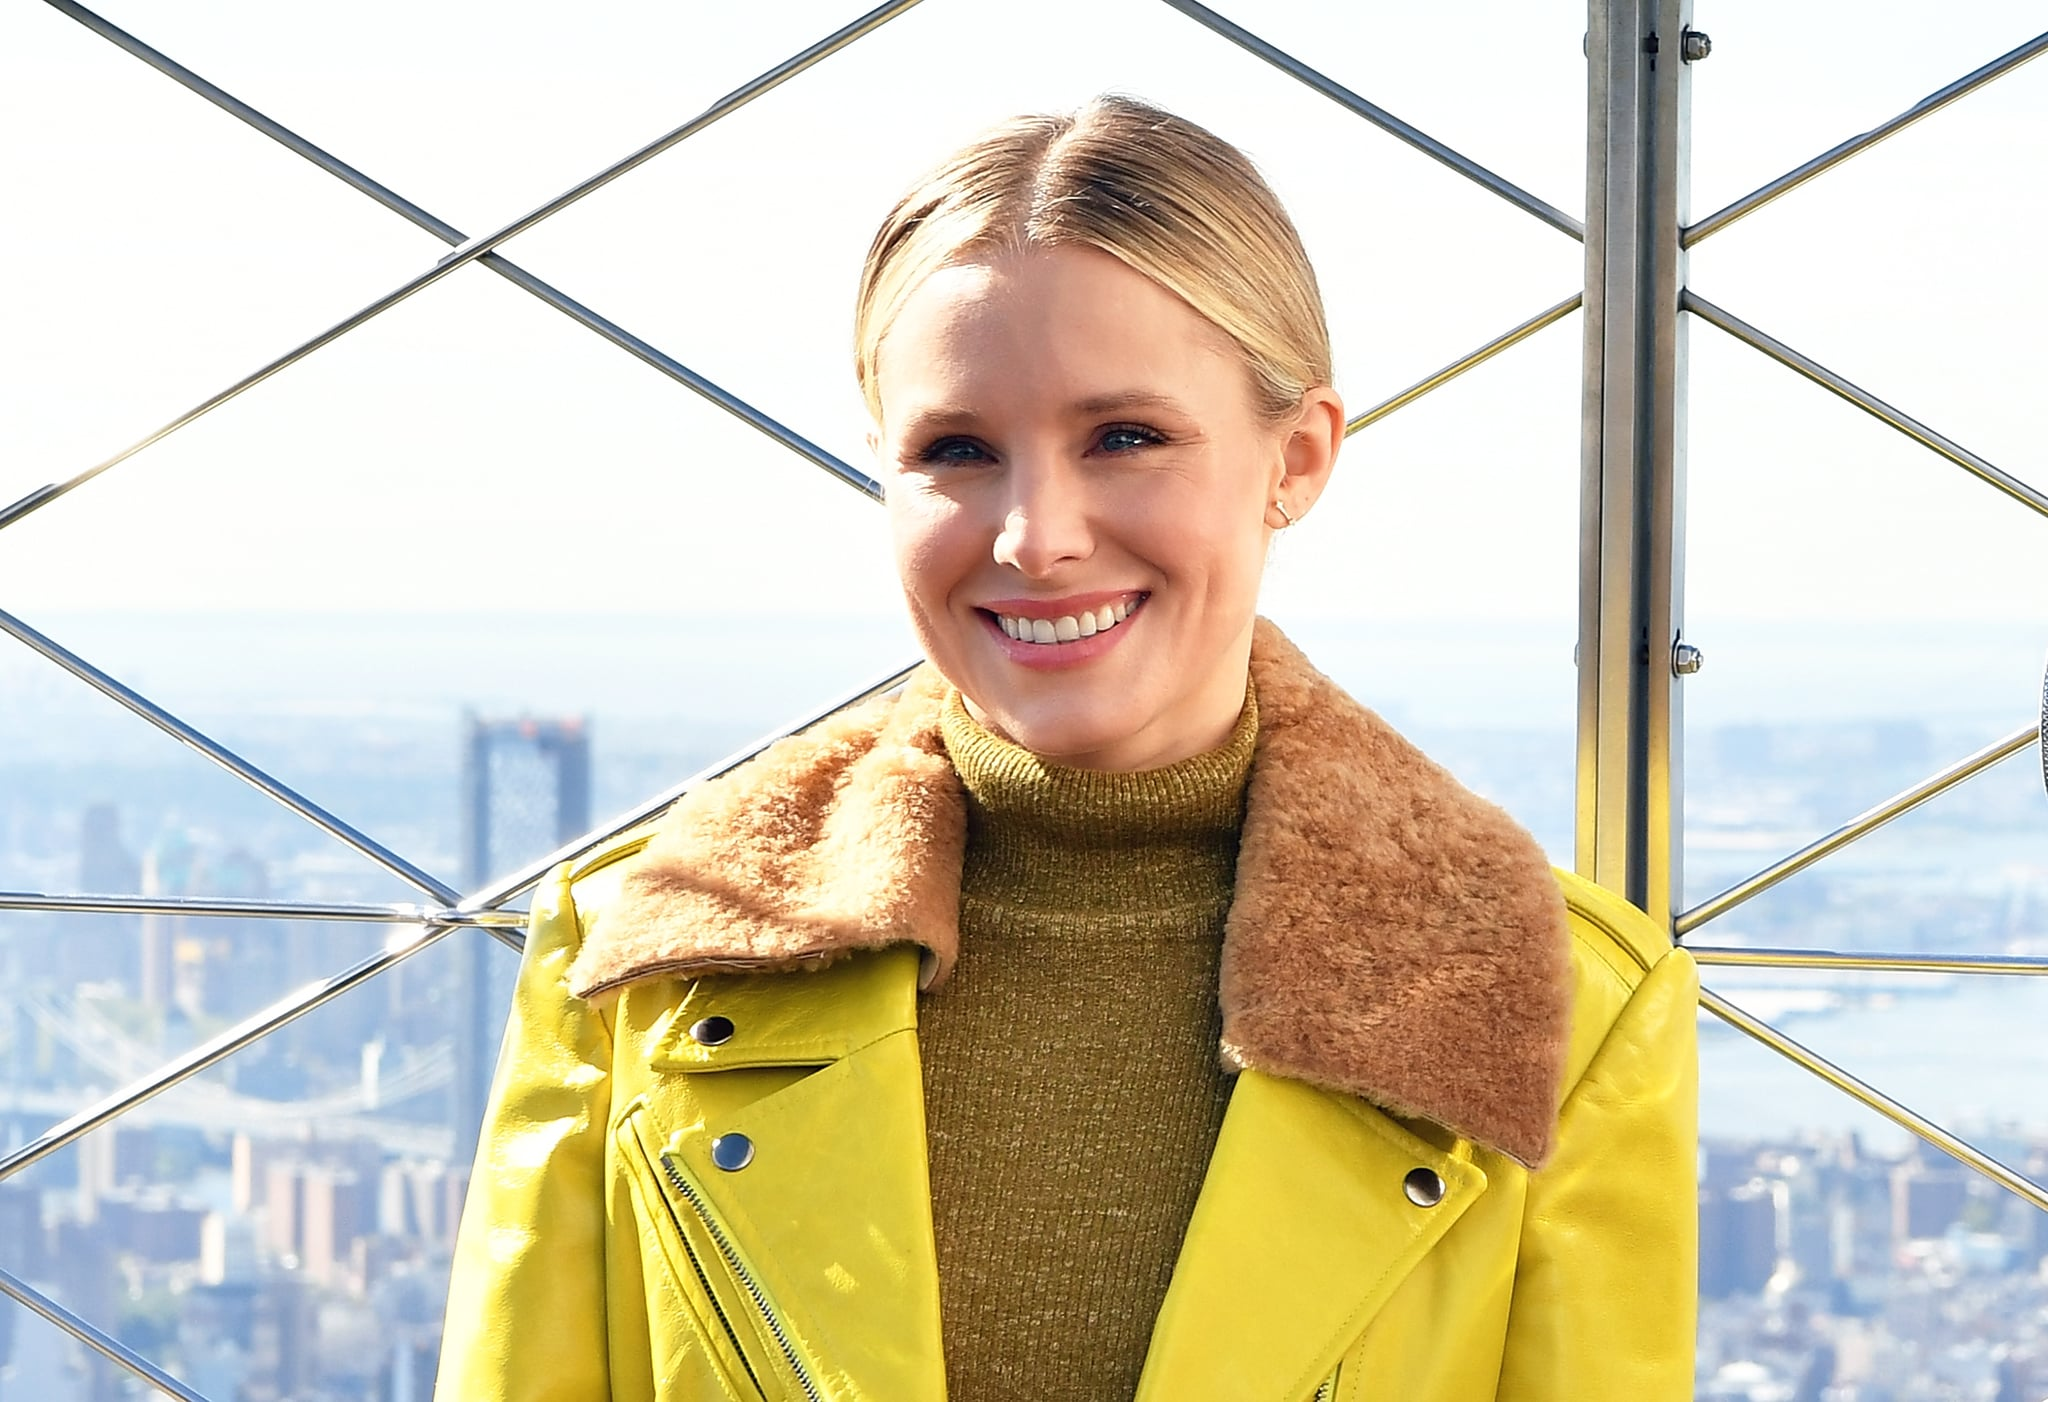 NEW YORK, NY - SEPTEMBER 27:  Actress Kristen Bell attends ceremonial lighting of Empire State Building in support of Women's Peace & Humanitarian Fund at The Empire State Building on September 27, 2018 in New York City.  (Photo by Slaven Vlasic/Getty Images)